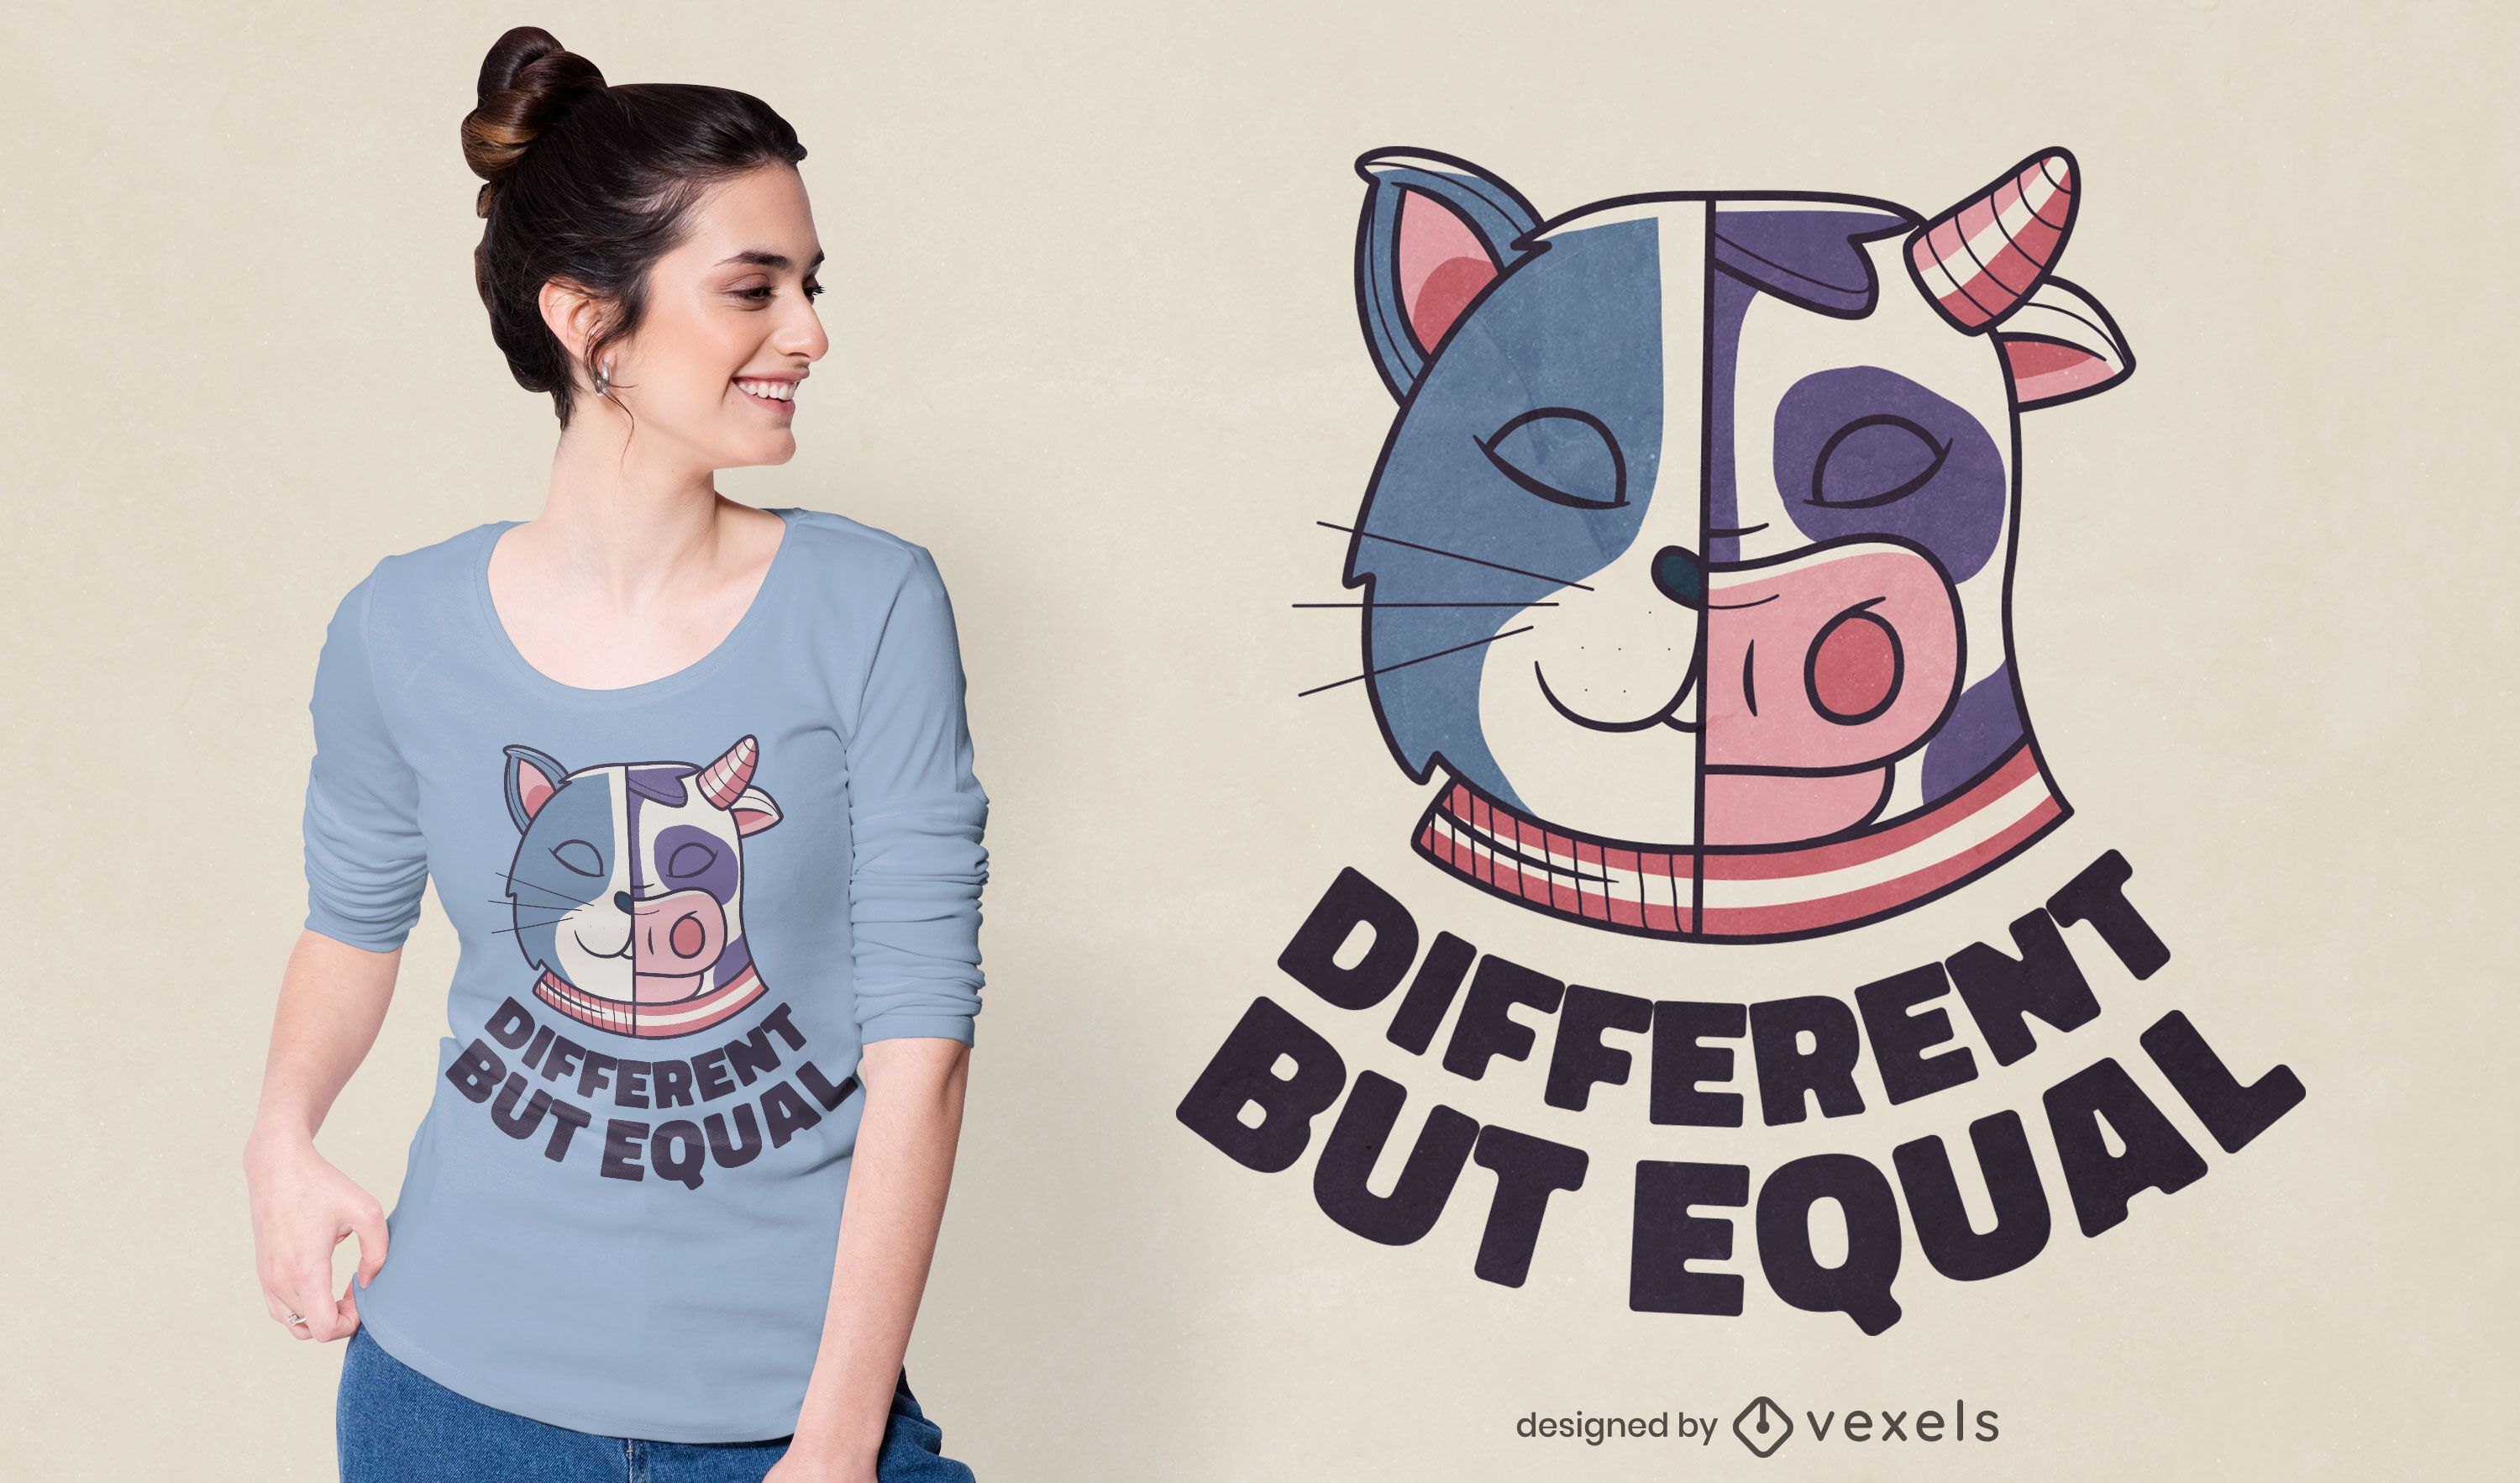 Different but equal t-shirt design